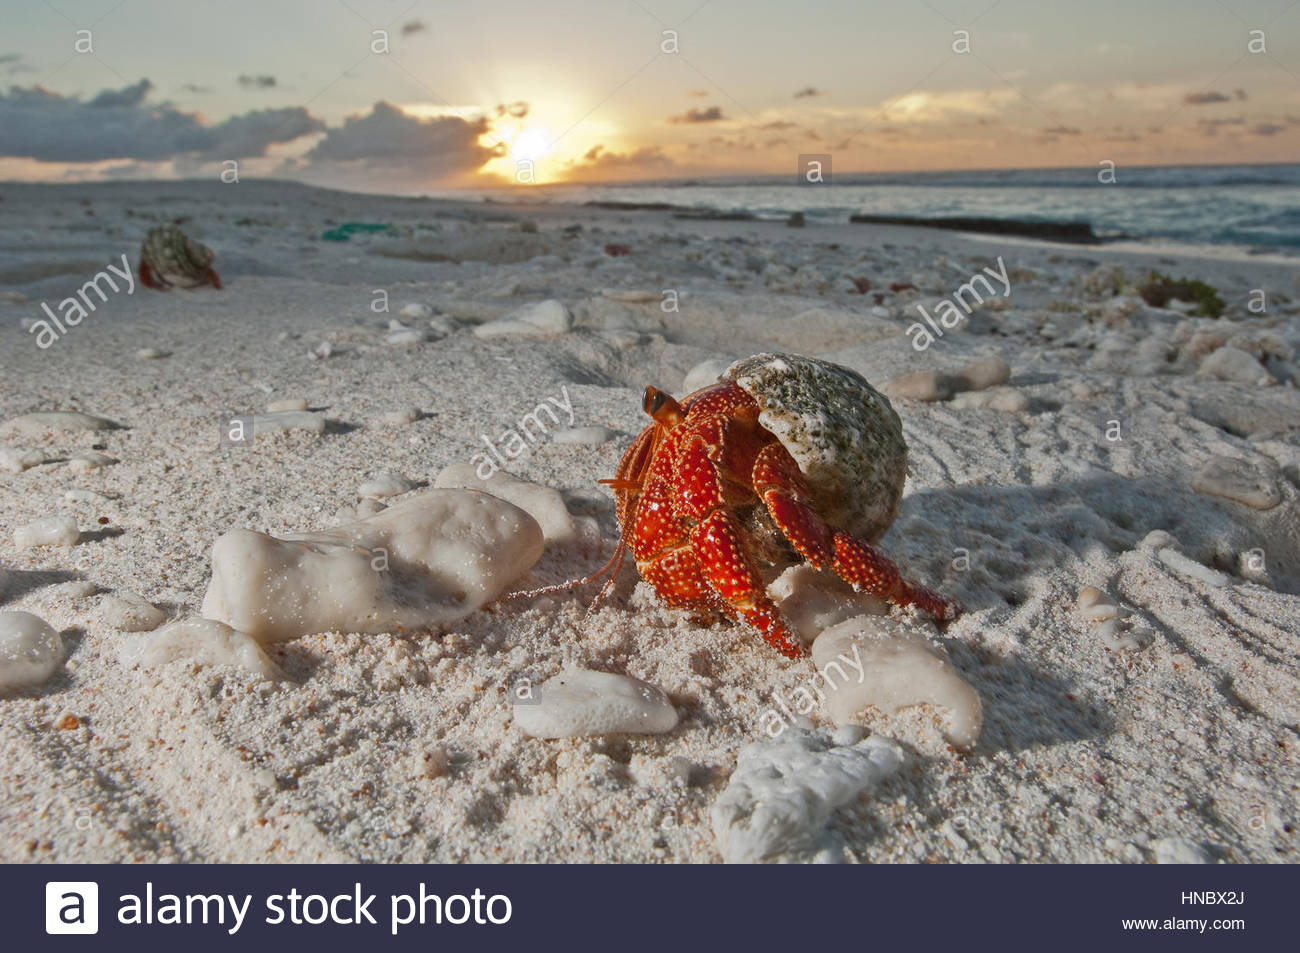 A hermit crab crawls on a sandy beach on the deserted Starbuck Island in the Southern Line Islands. - Stock Image